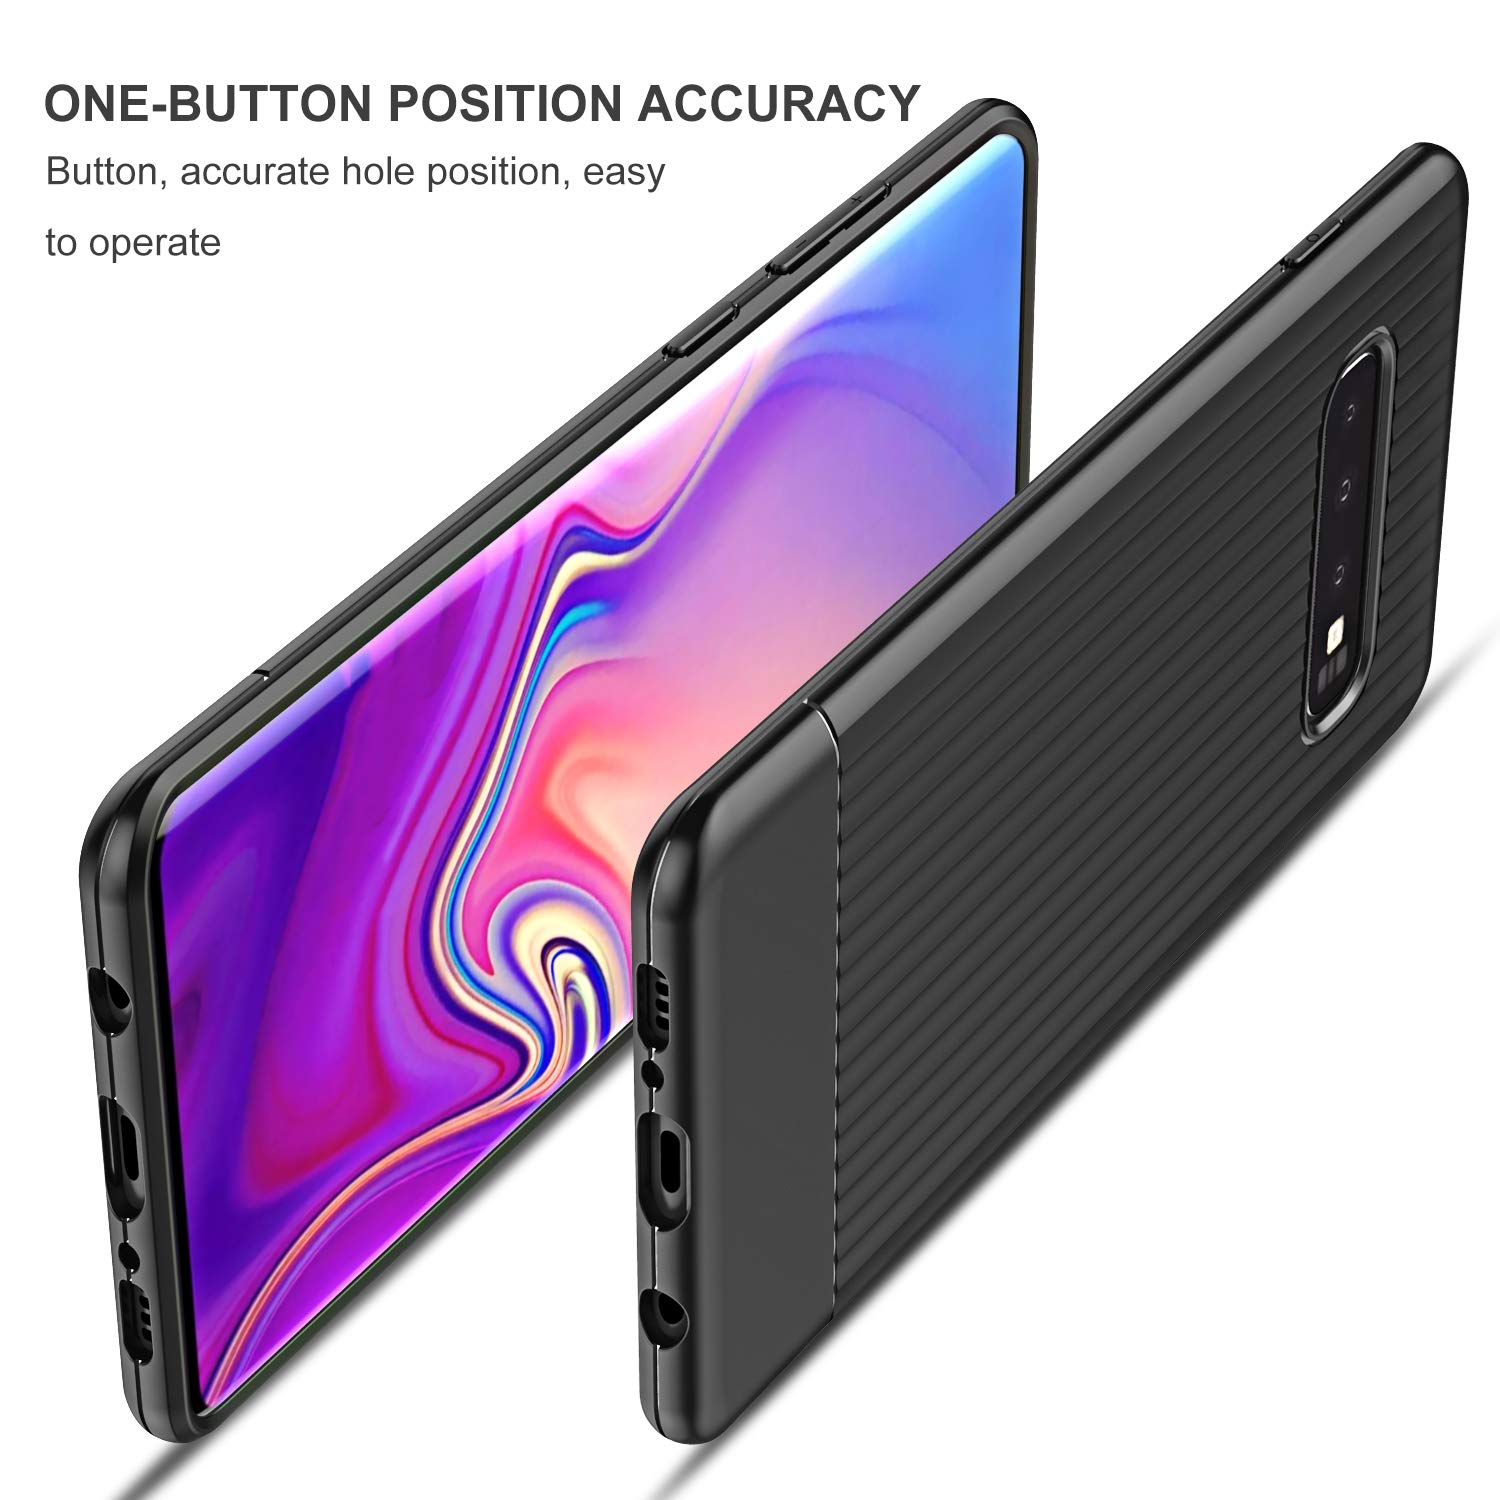 Amazon.com: QITAYO Compatible with Samsung Galaxy S10 Plus, S10 Plus Case with Heavy Duty Protection and Vertical Stripes Case Back, TPU Soft Slim Case for ...